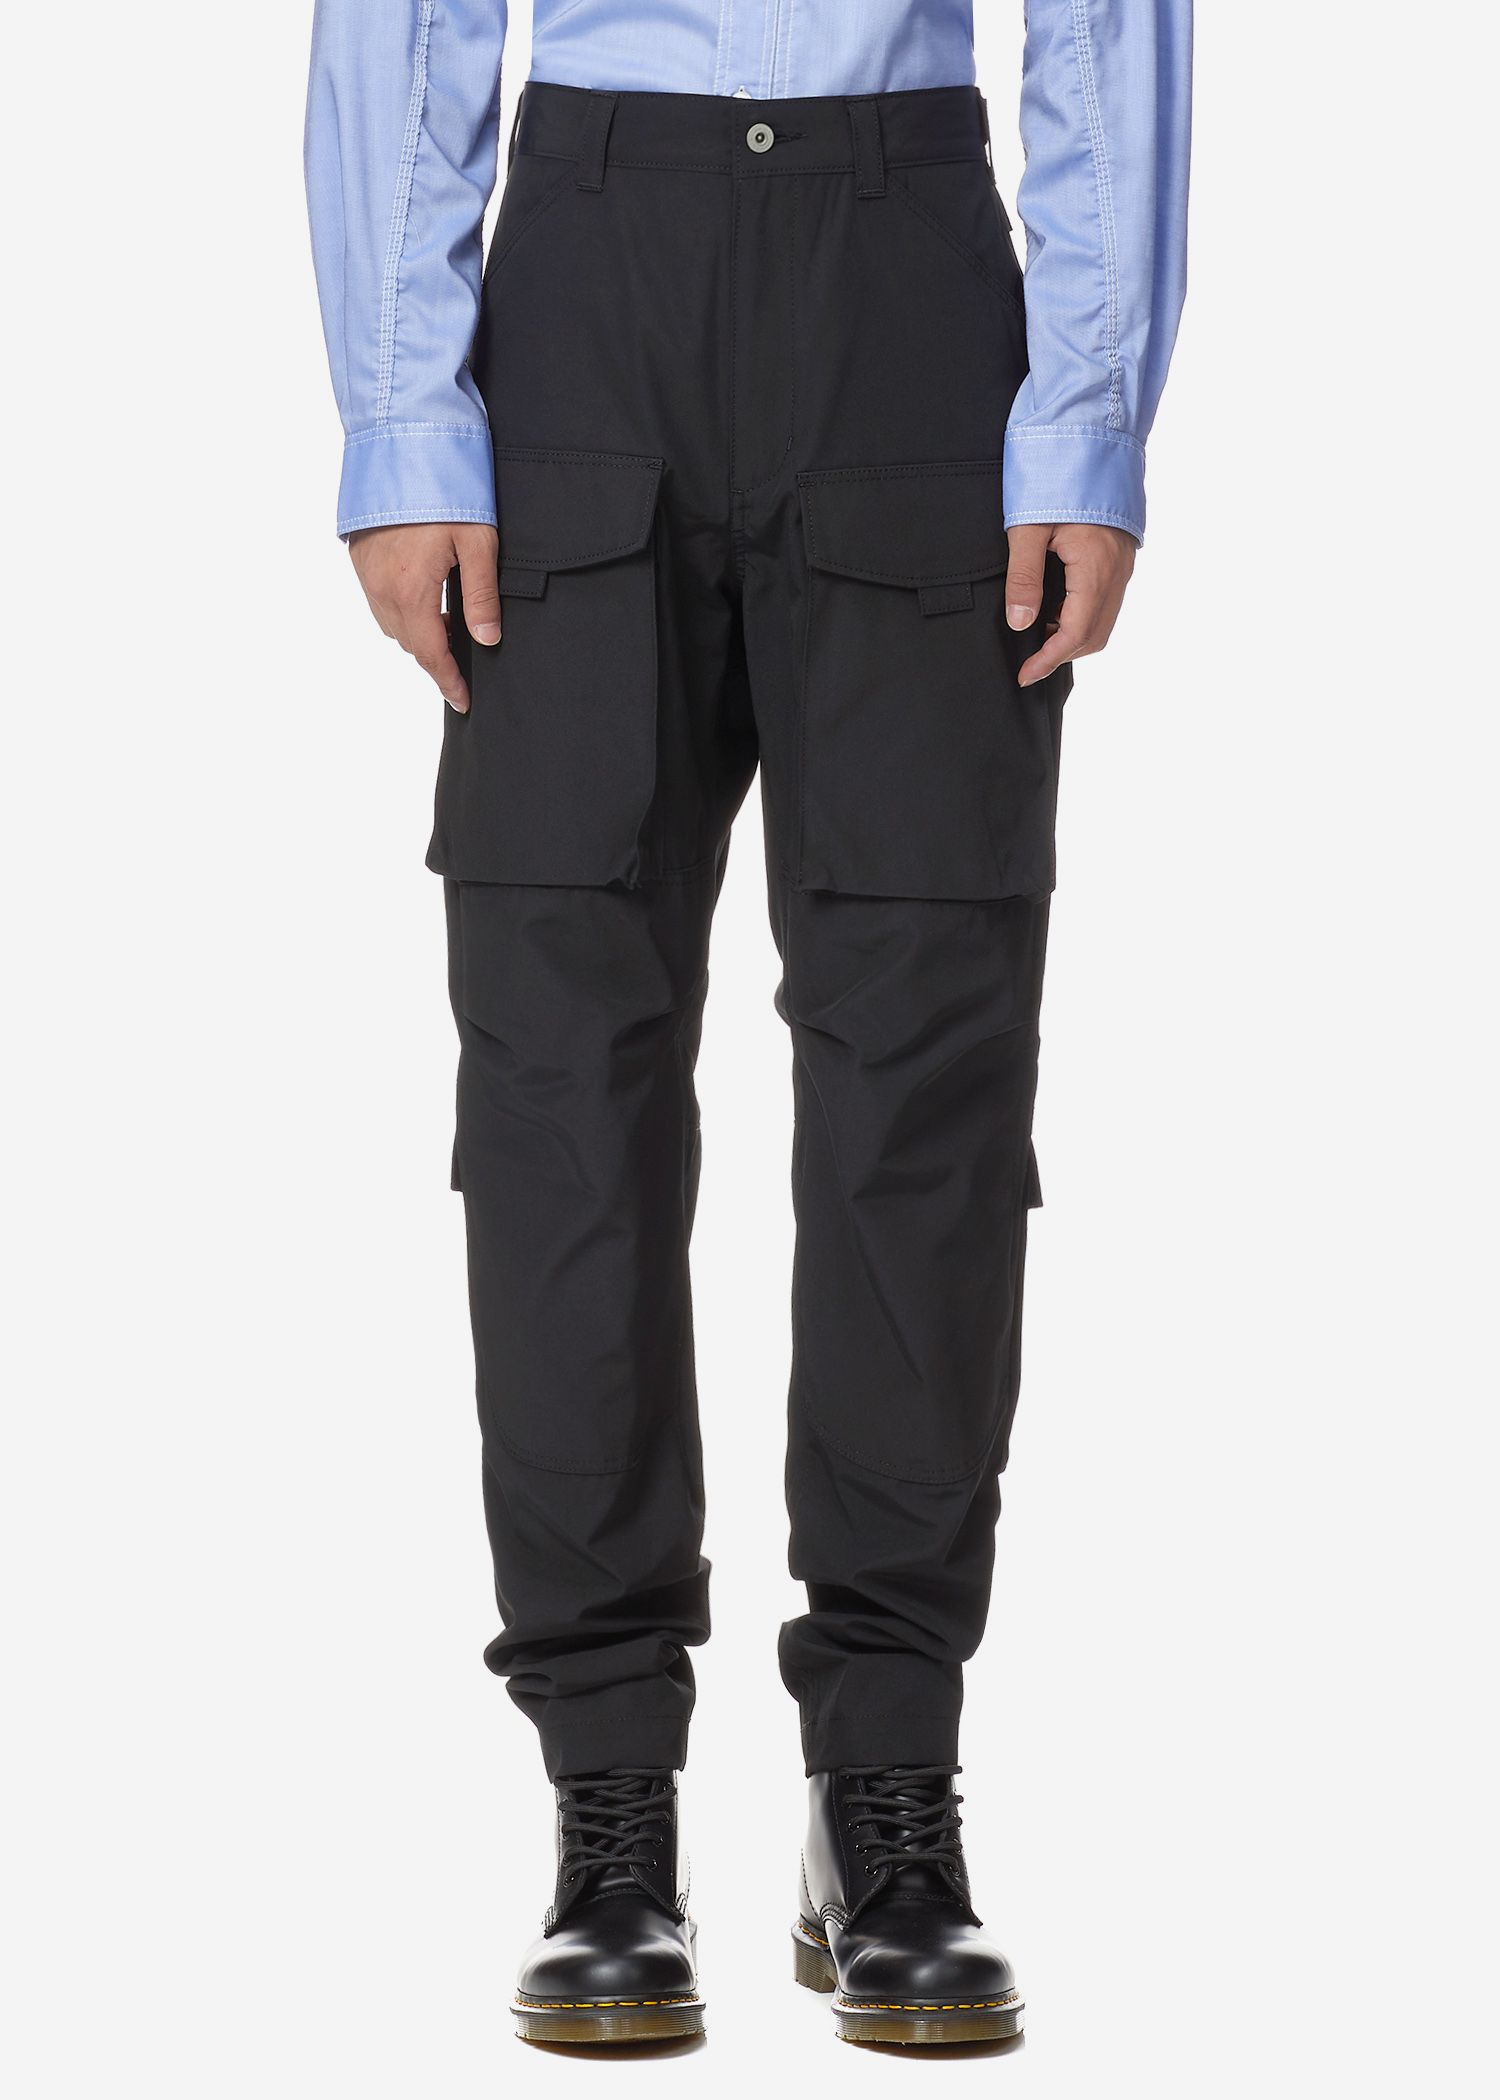 best selection of 2019 choose authentic vivid and great in style JUNYA WATANABE POLYESTER COTTON FRONT CARGO PANTS ...